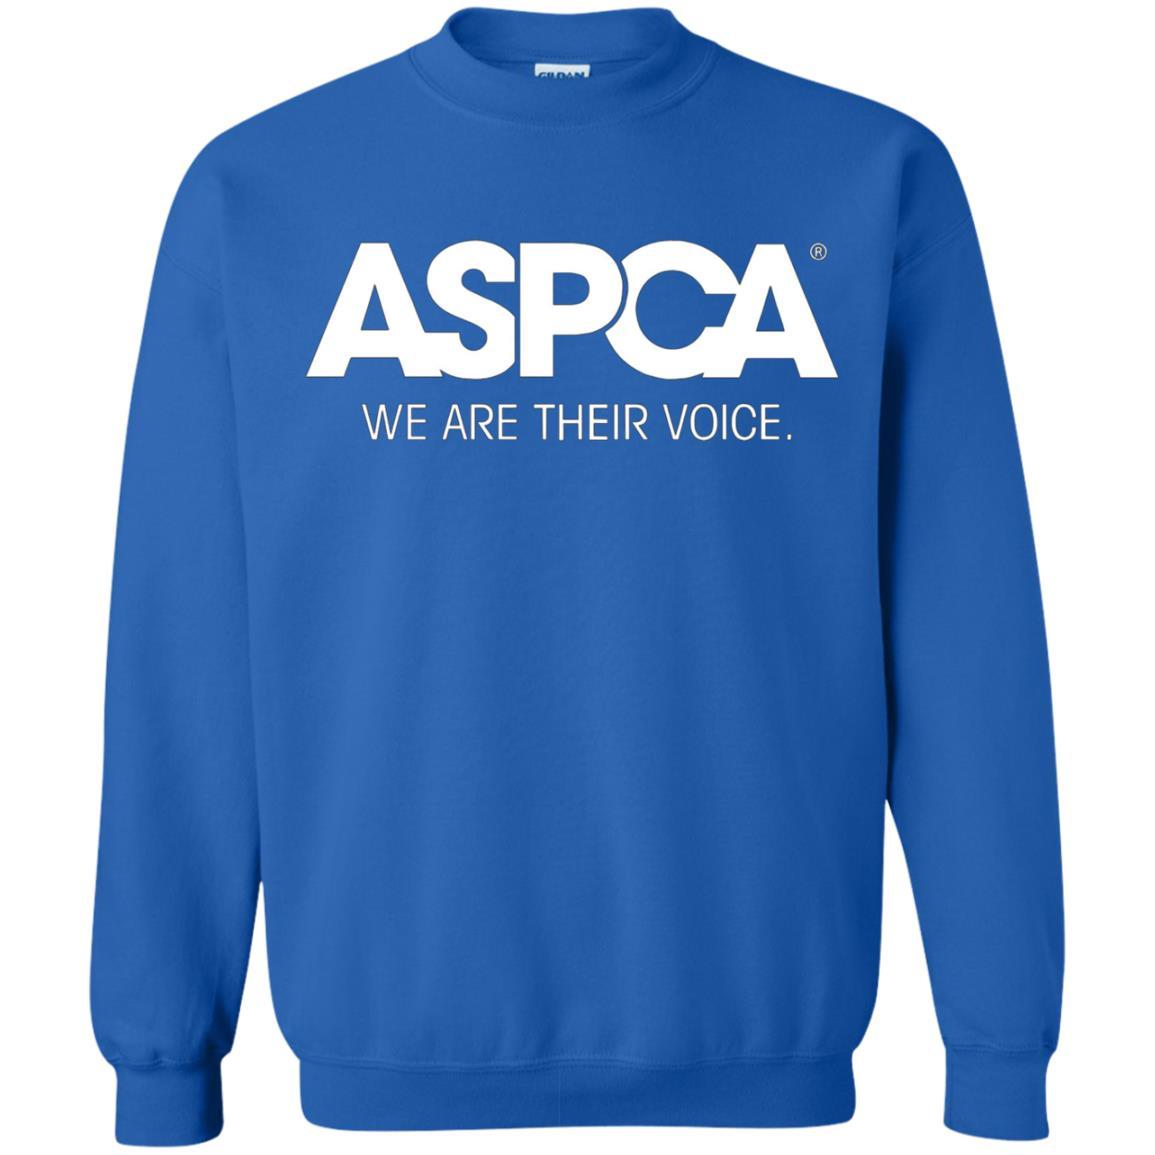 ASPCA Apparel - Crewneck Pullover Sweatshirt Royal / 5XL